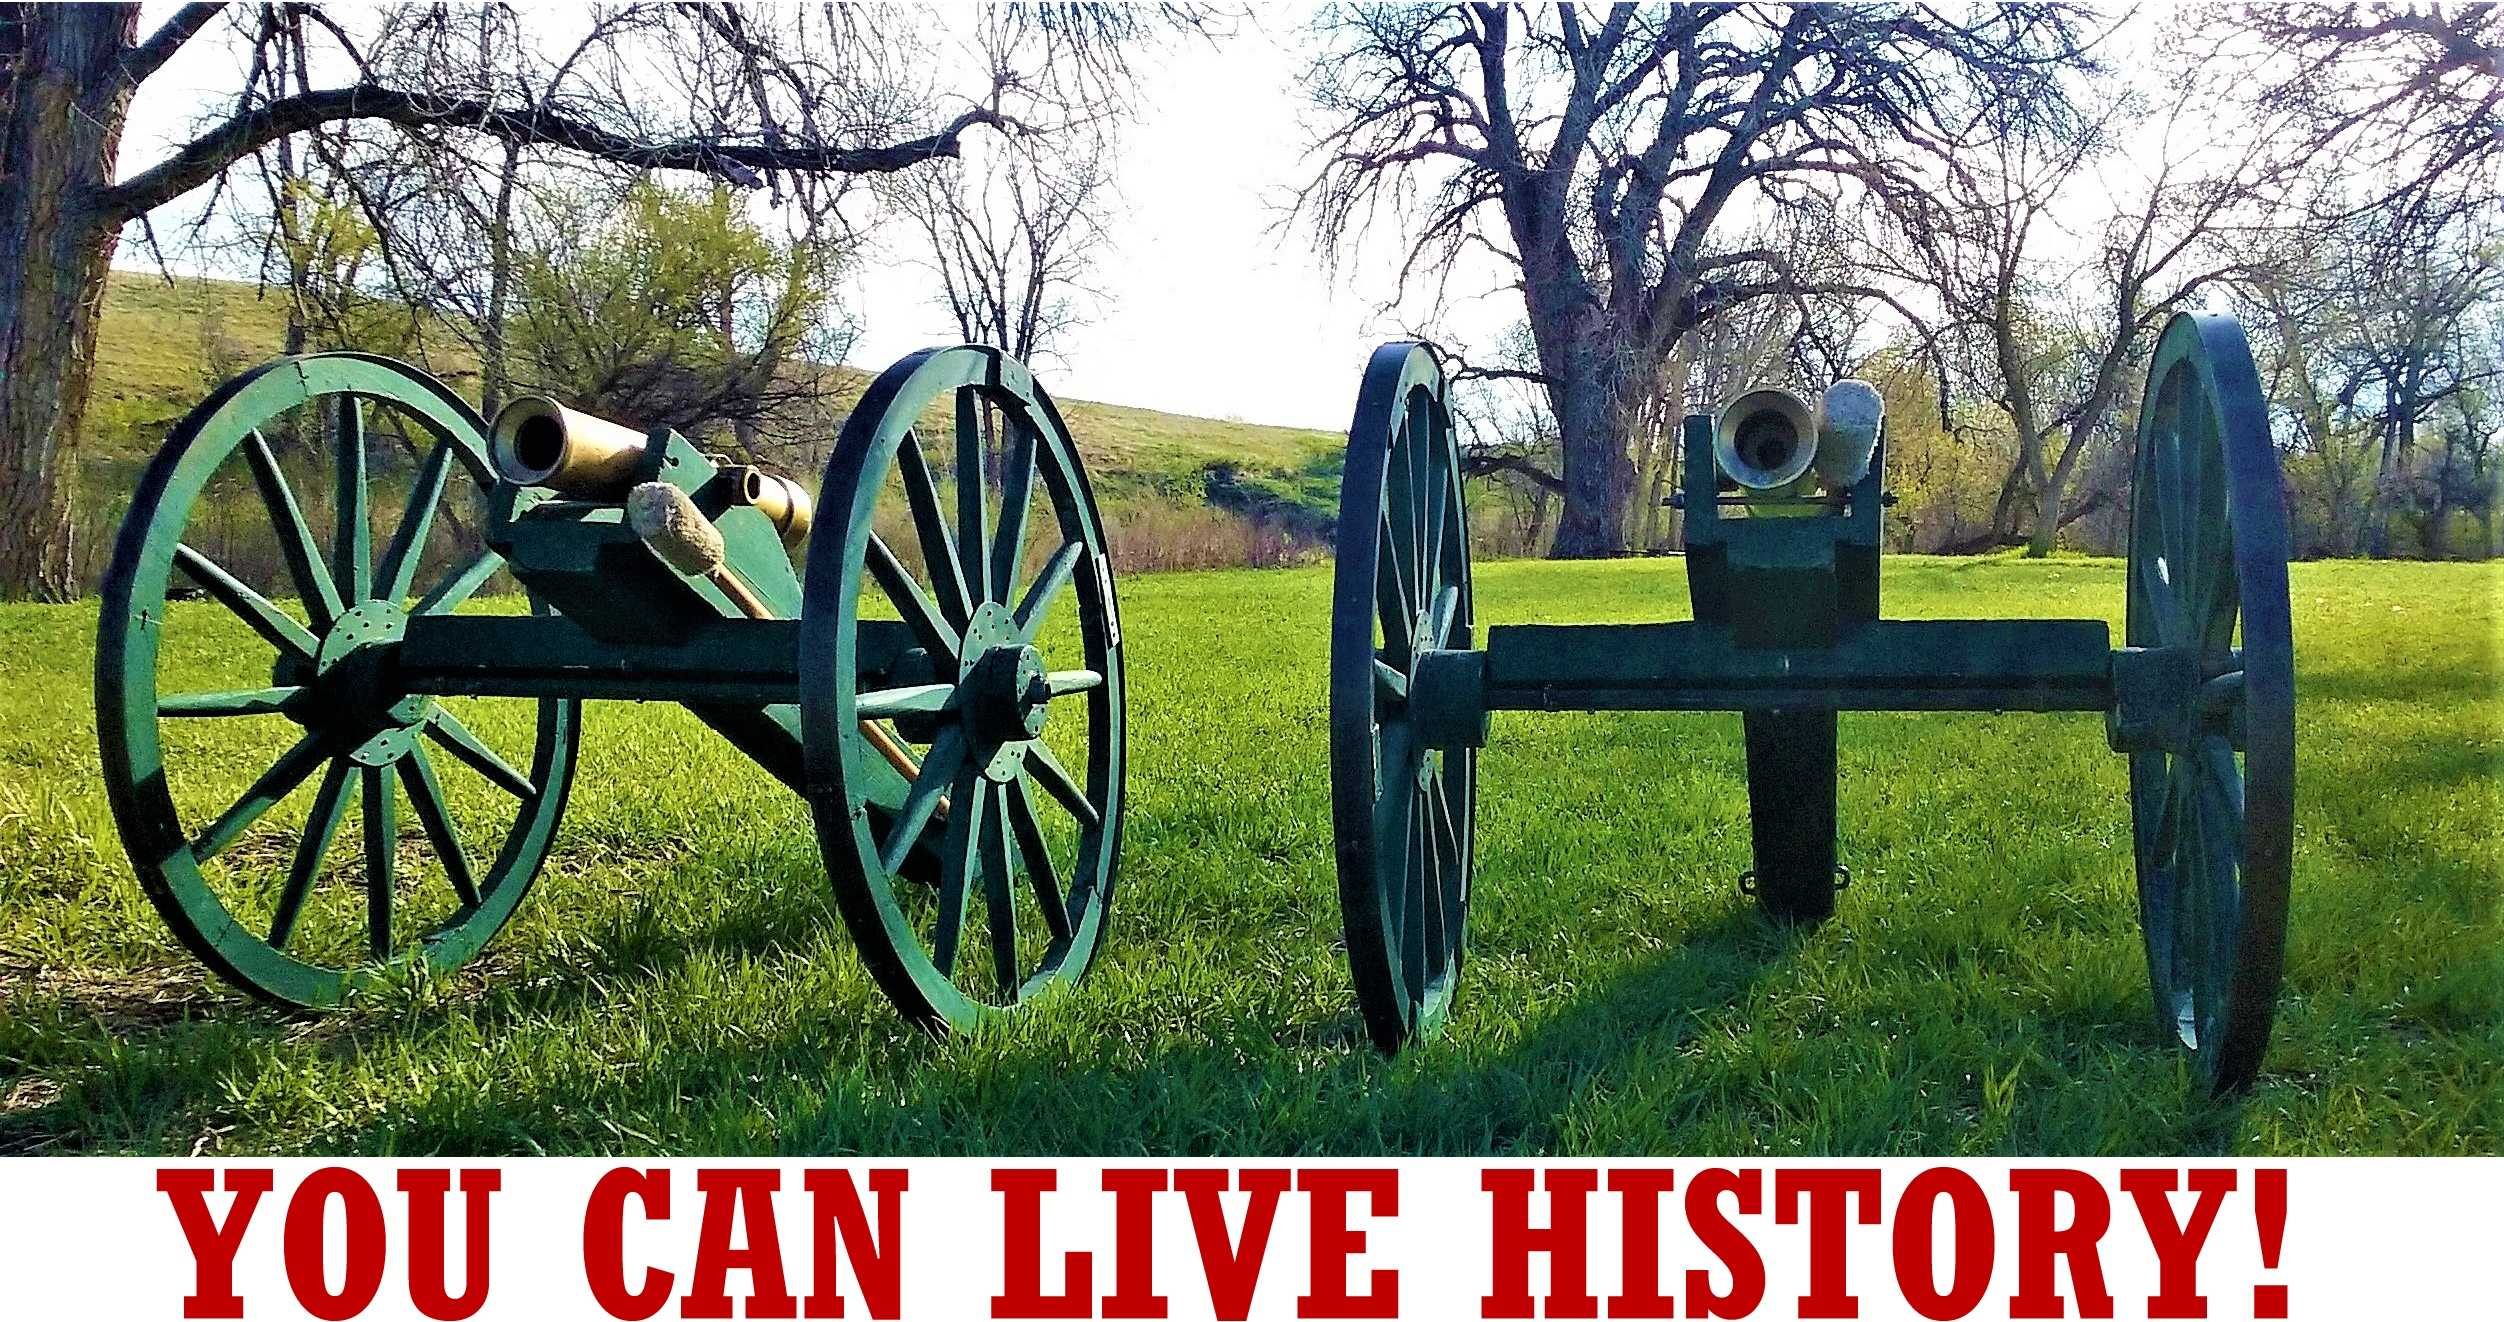 You Can Live History, You now have the opportunity to experience American history in a personal way!